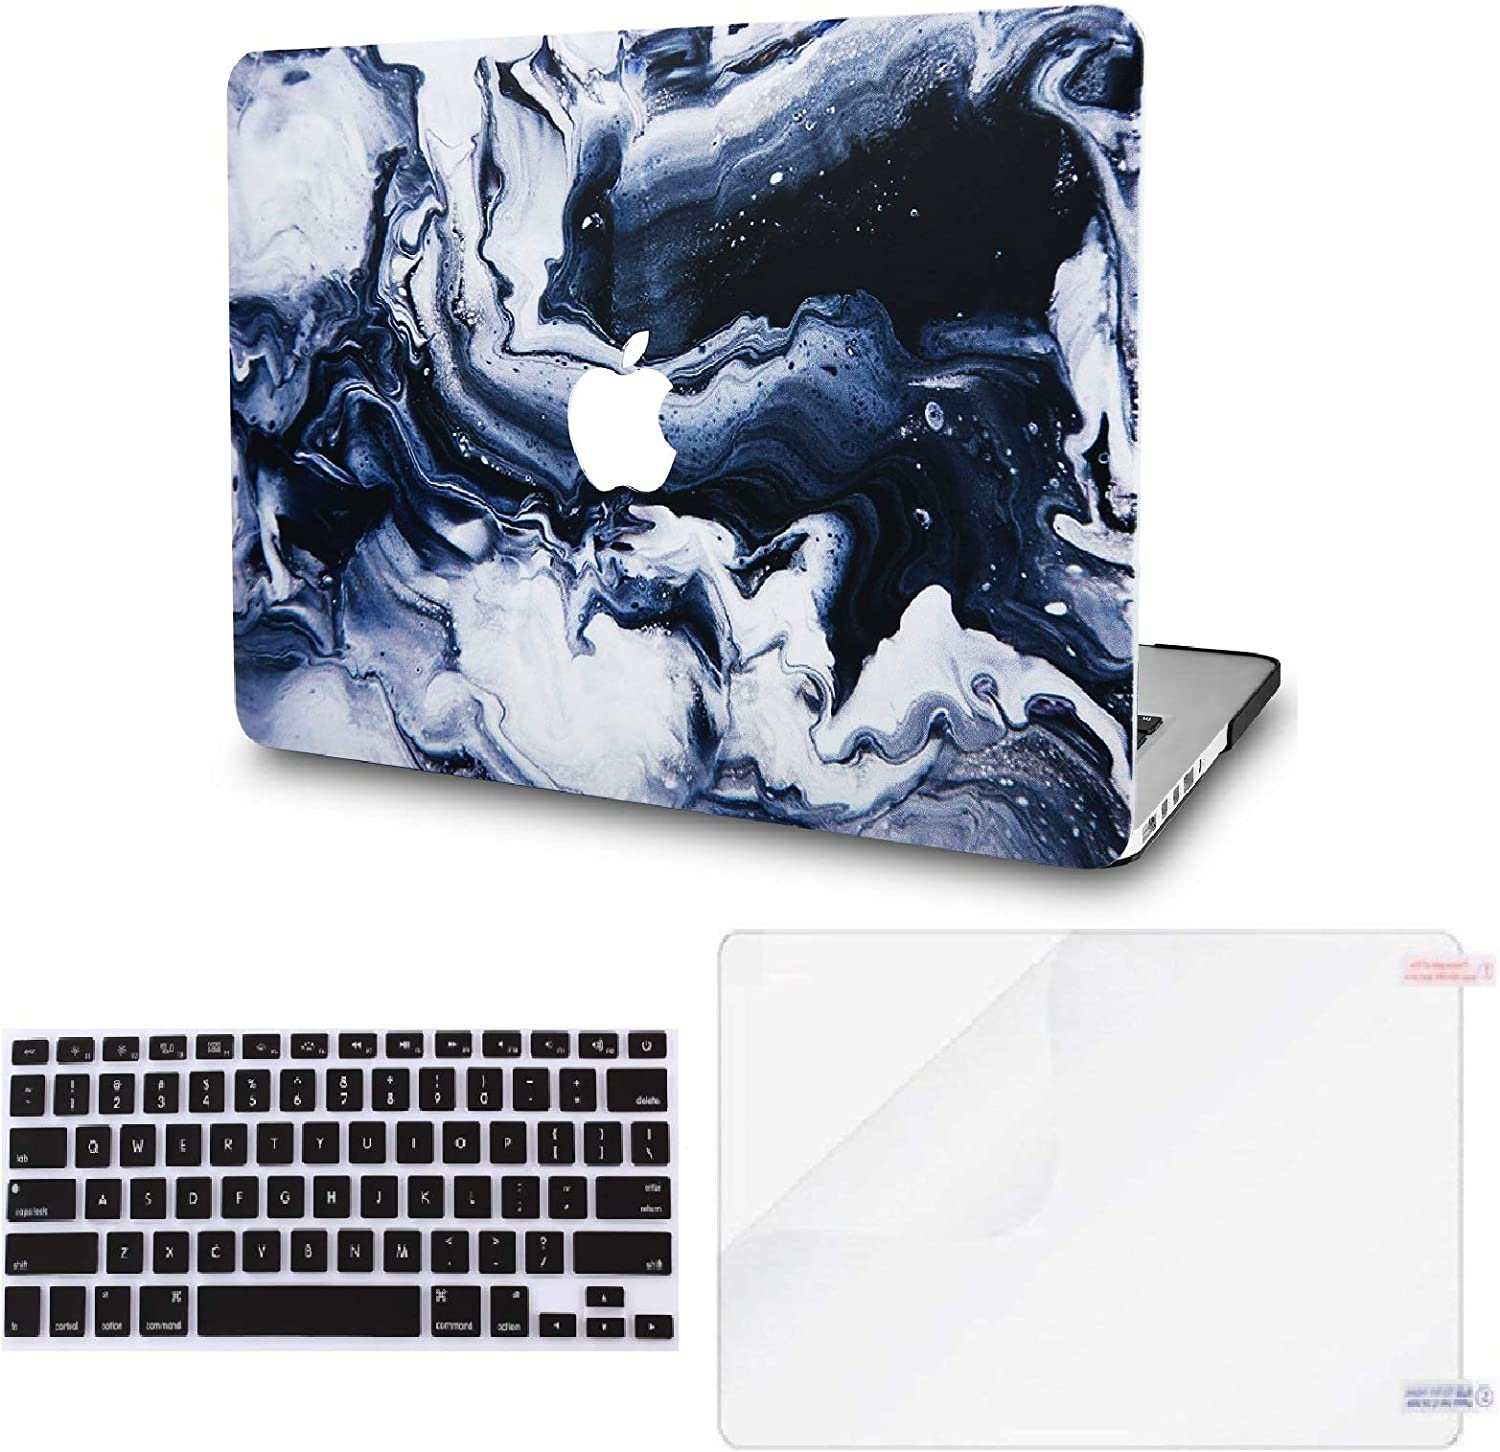 "KECC Laptop Case for New MacBook Air 13"" Retina (2019/2018, Touch ID) w/Keyboard Cover +Screen Protector Plastic Hard Shell A1932 3 in 1 Bundle (Black Grey Marble)"